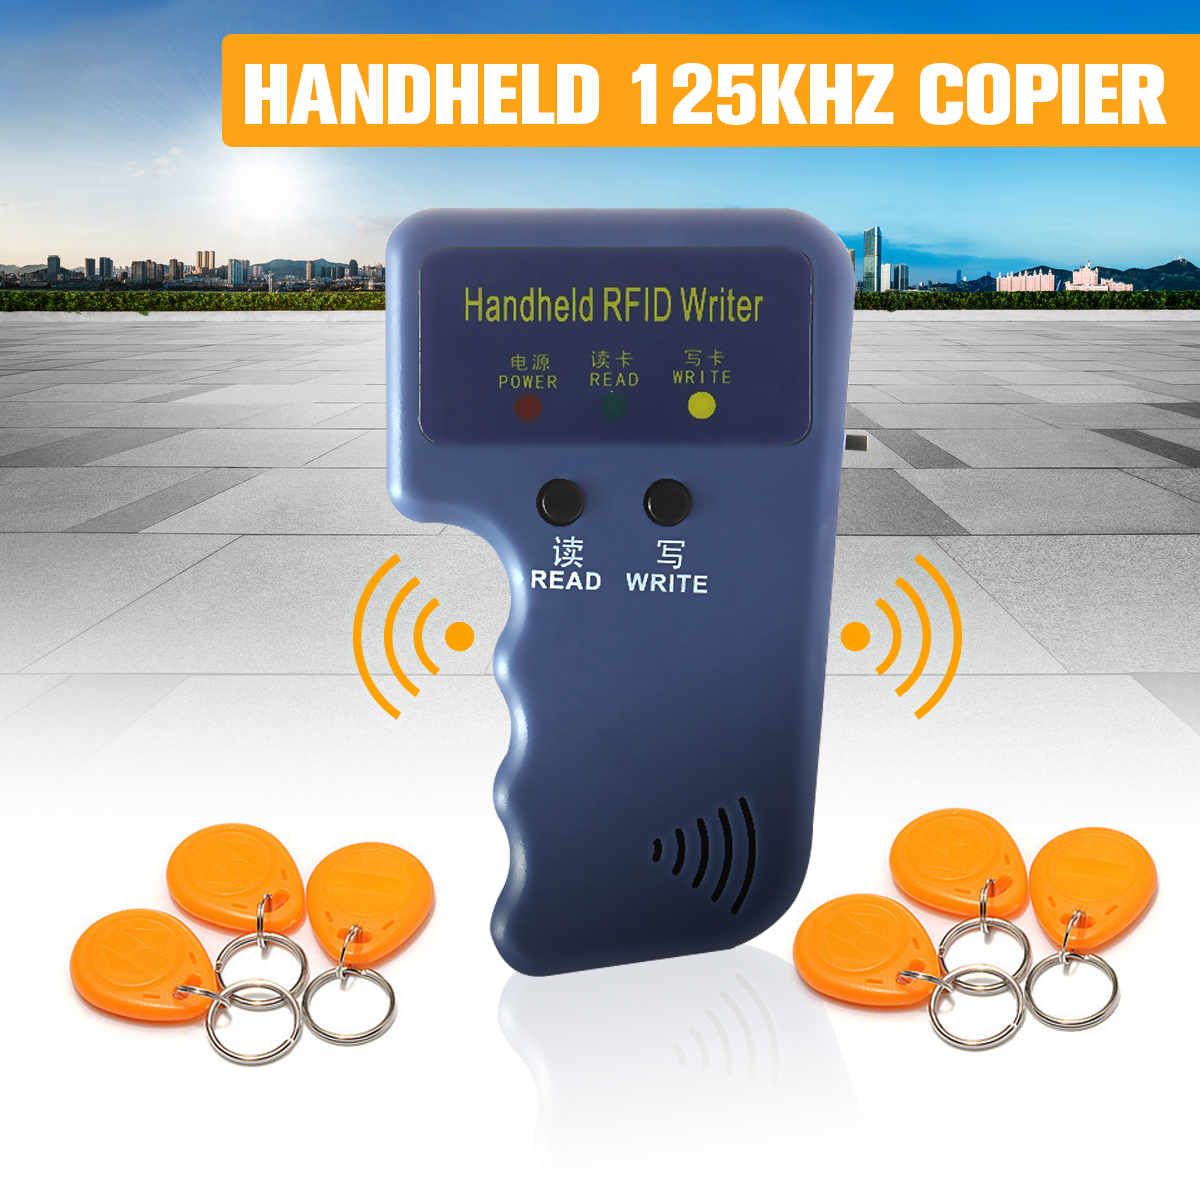 RFID Handheld 125KHz EM4100 ID Card Copier Writer Duplicator Programmer Reader+6Keys+6pcs Rewritable ID Keyfobs Tags CardsRFID Handheld 125KHz EM4100 ID Card Copier Writer Duplicator Programmer Reader+6Keys+6pcs Rewritable ID Keyfobs Tags Cards